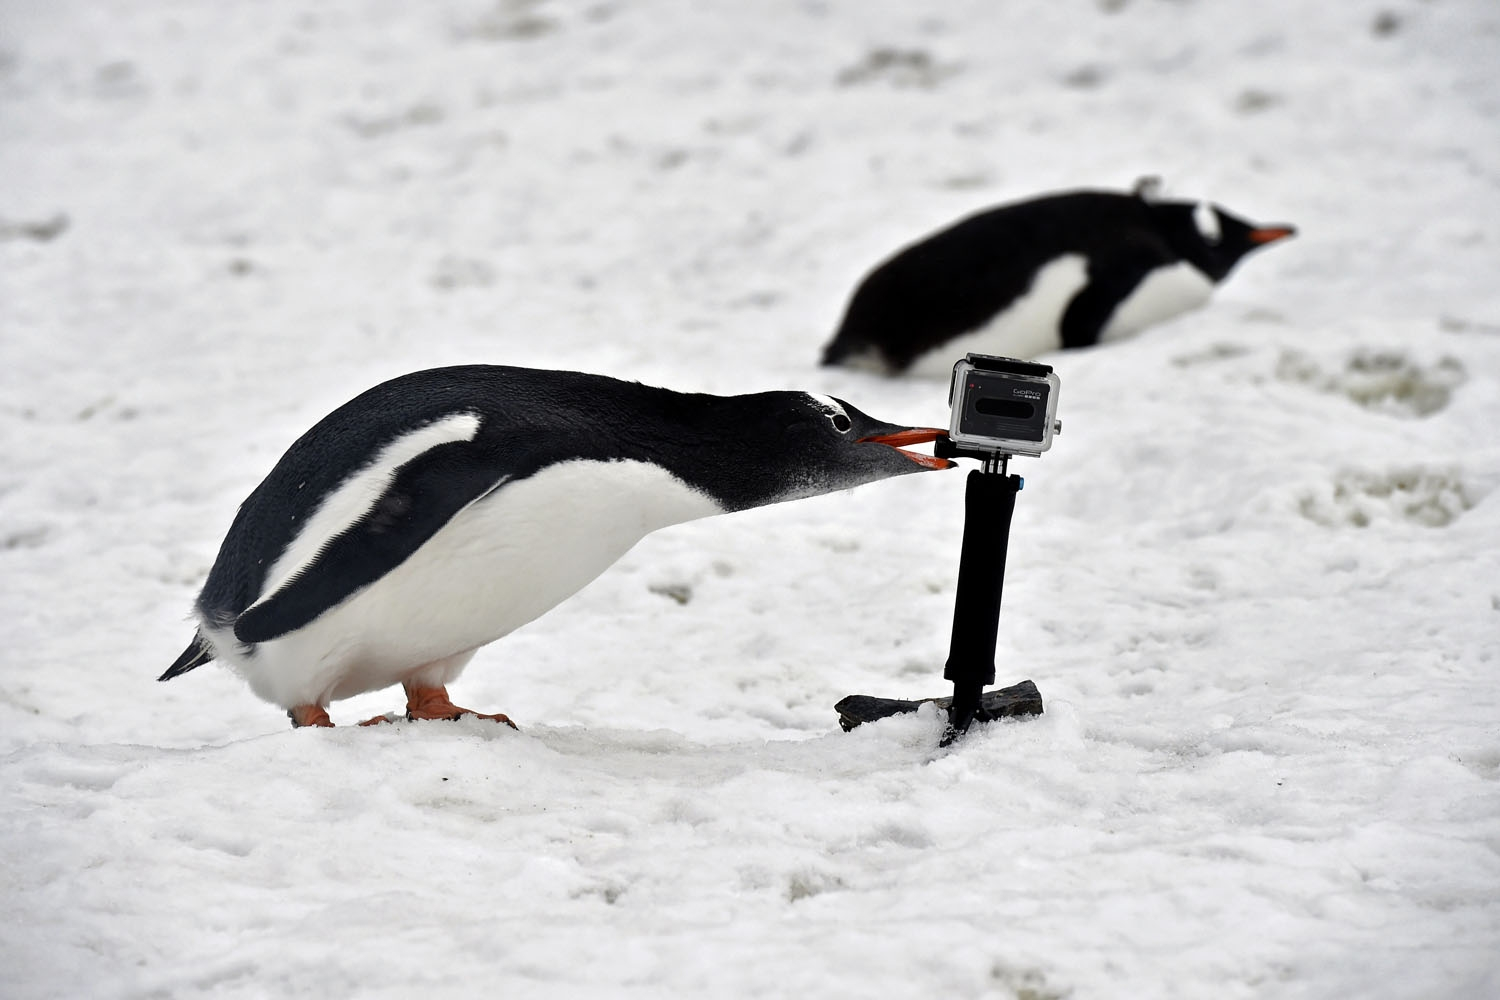 A Gentoo pinguin bites a gopro camera in Orne Harbour, Antarctic,  on March 05, 2016